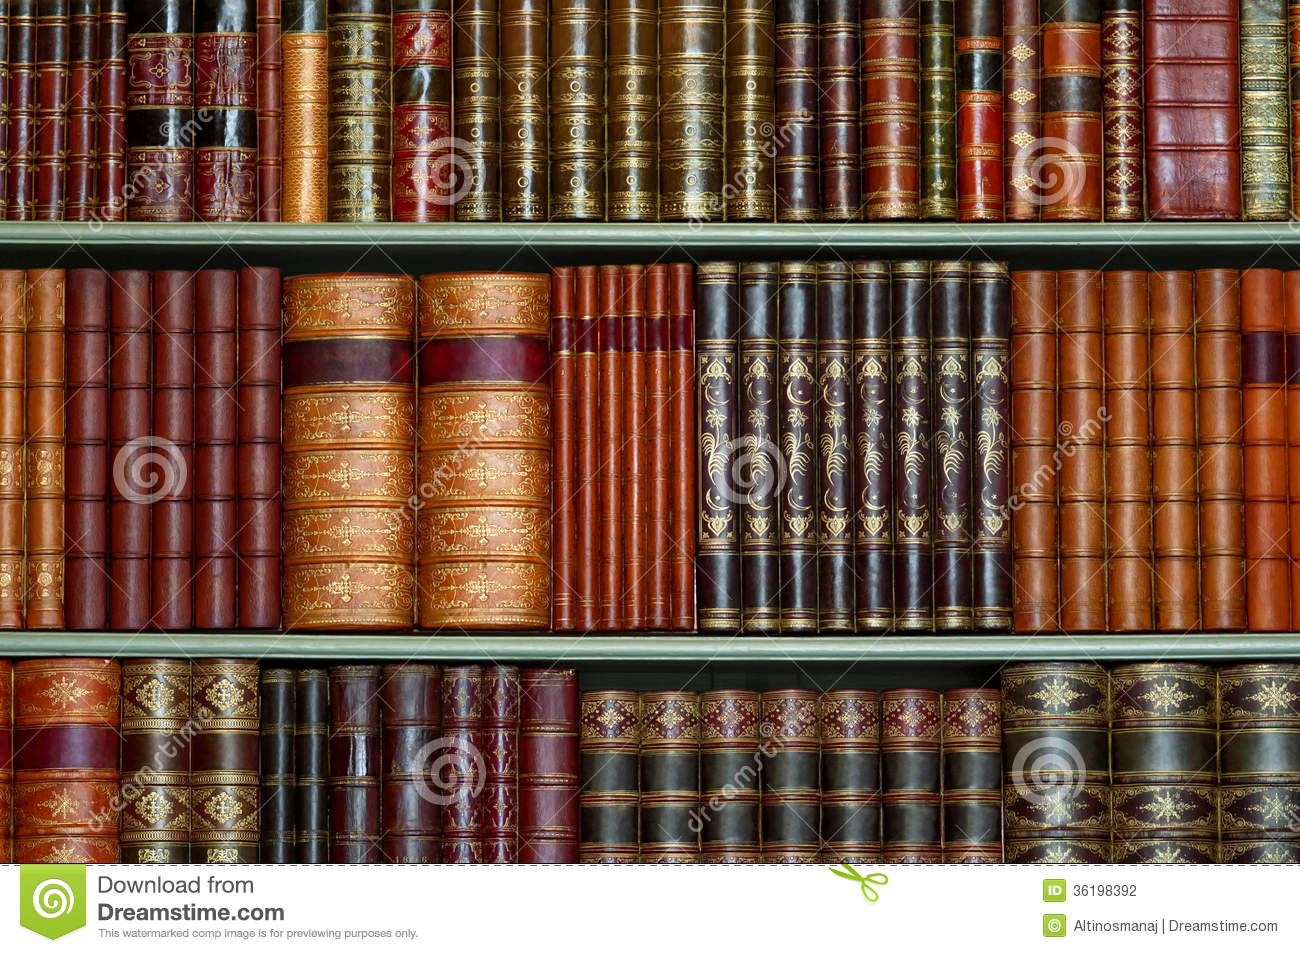 Stock Photography: Old library of vintage hard cover books on shelves